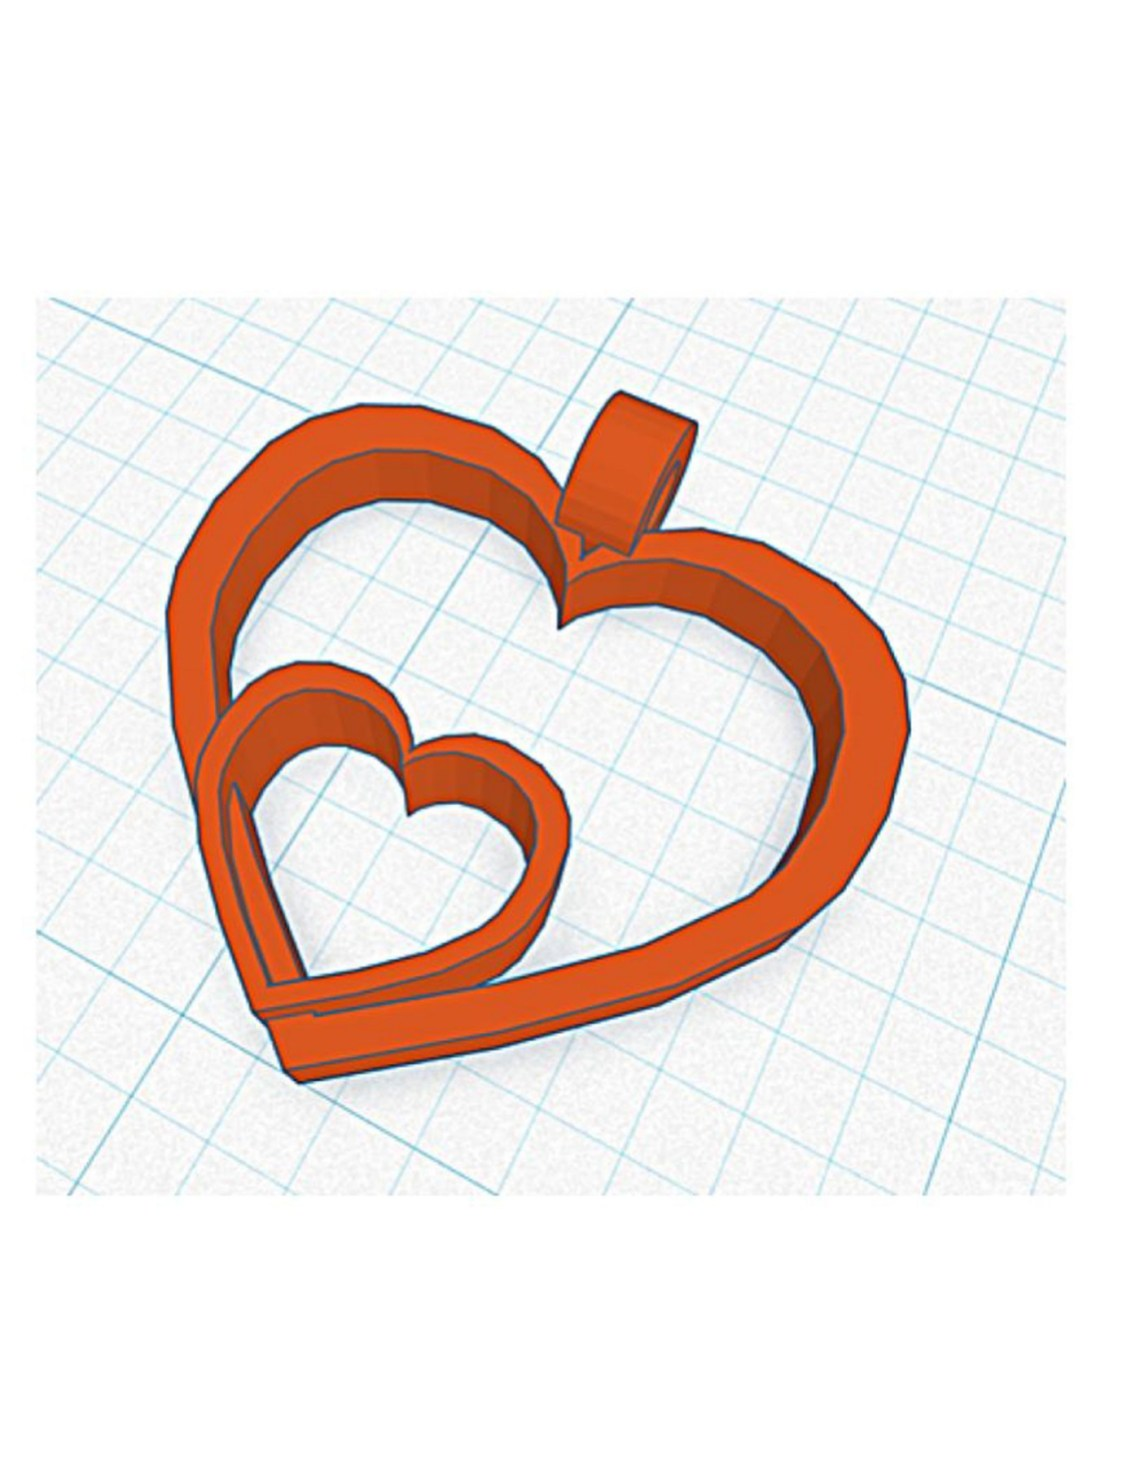 two red hearts that overlap on a cad drawing in 3d